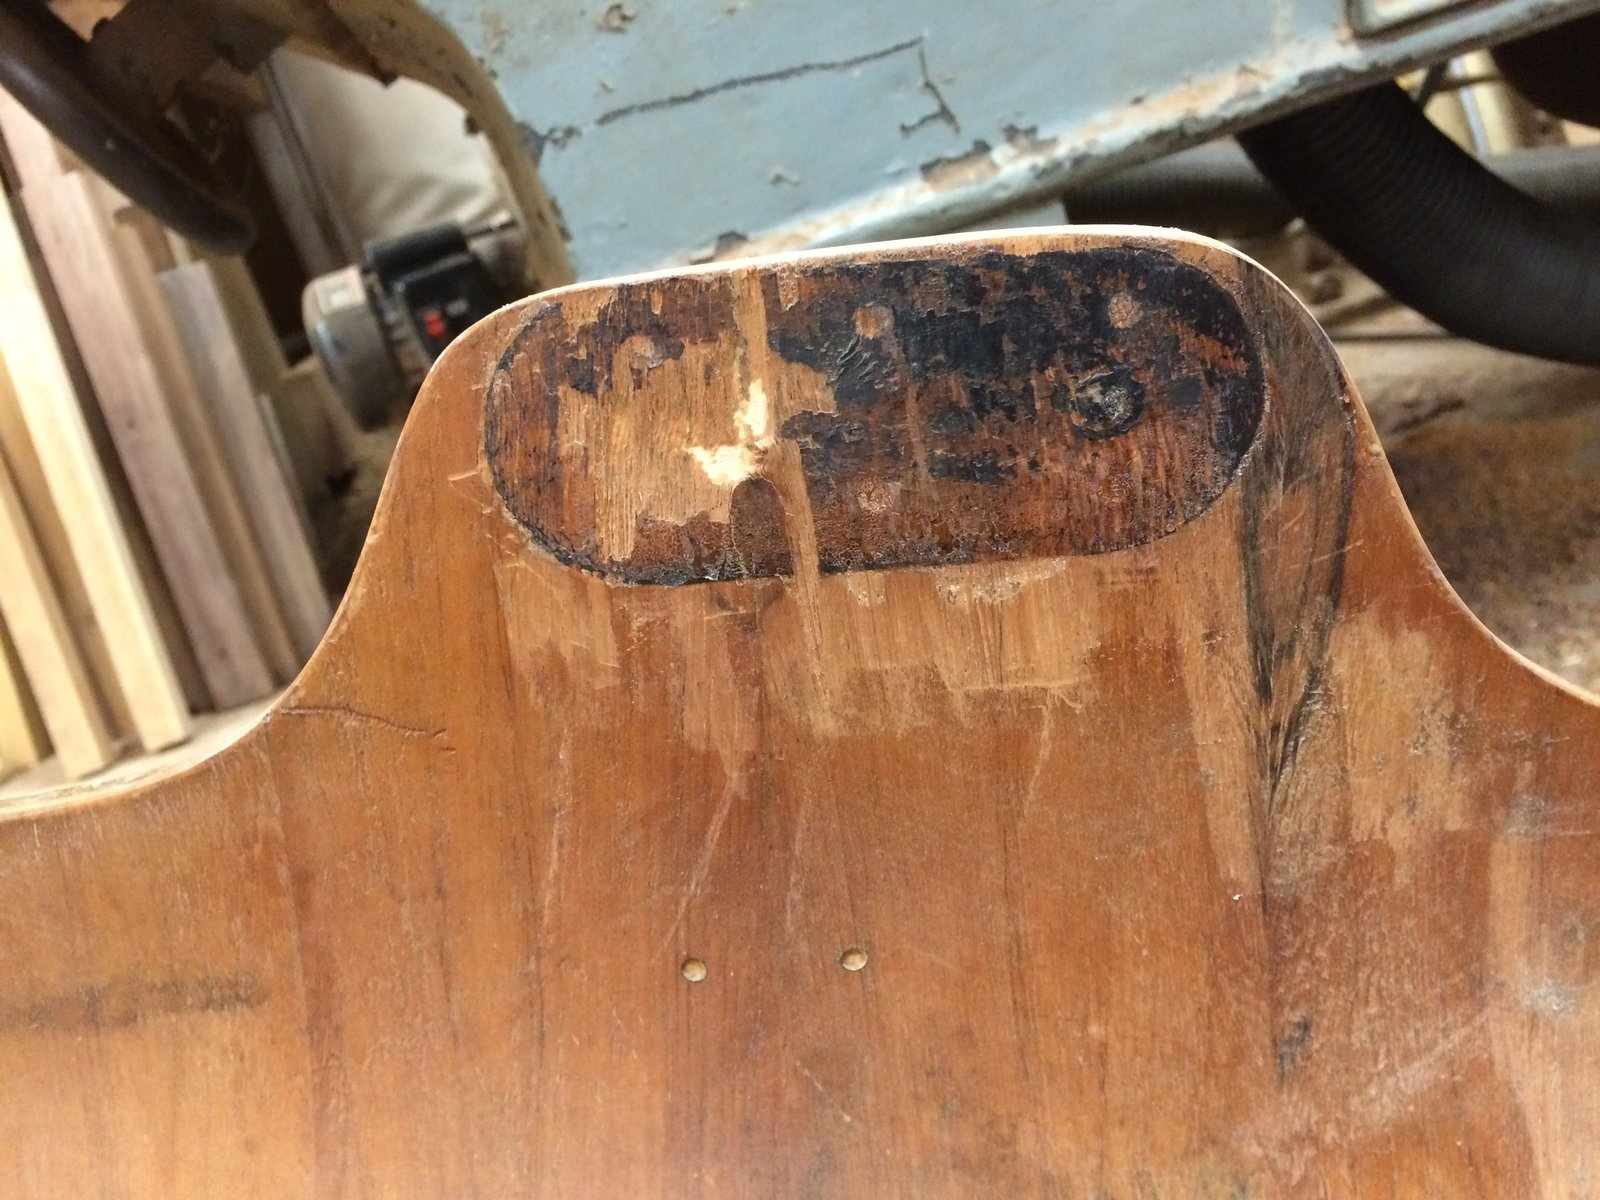 Keep an eye on the adhesive areas of your piece. As time passes, they can weaken and compromise the structural integrity of the design. While this technology was originally revolutionary for it's time, this tends to happen in vintage Eames lounge chairs, as seen in this photo.